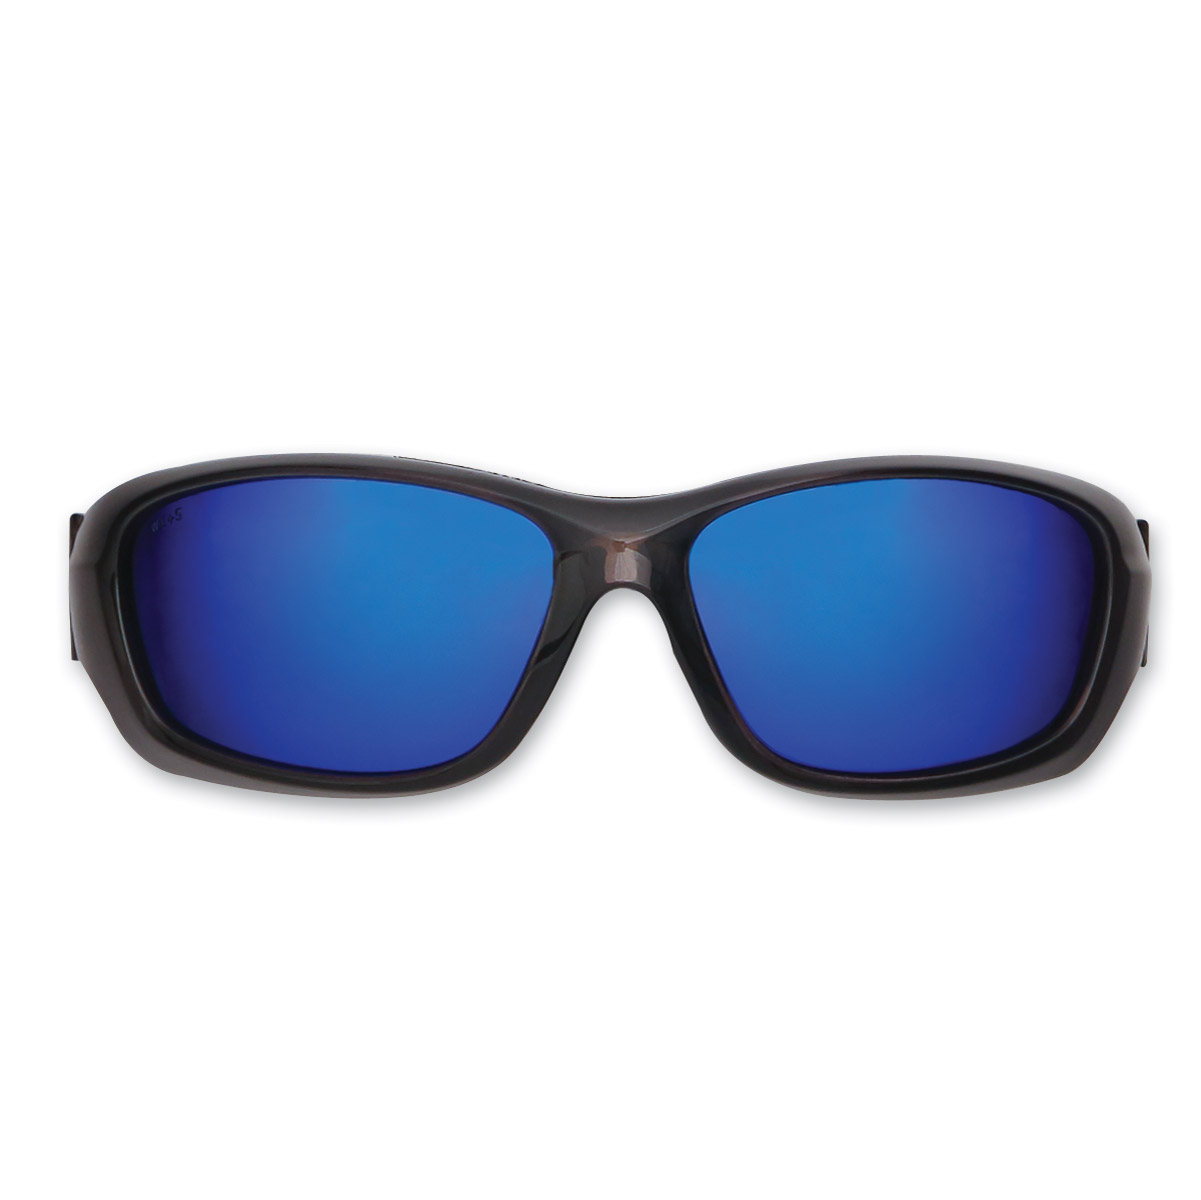 Wiley X Gravity Black Crystal Frame Sunglasses